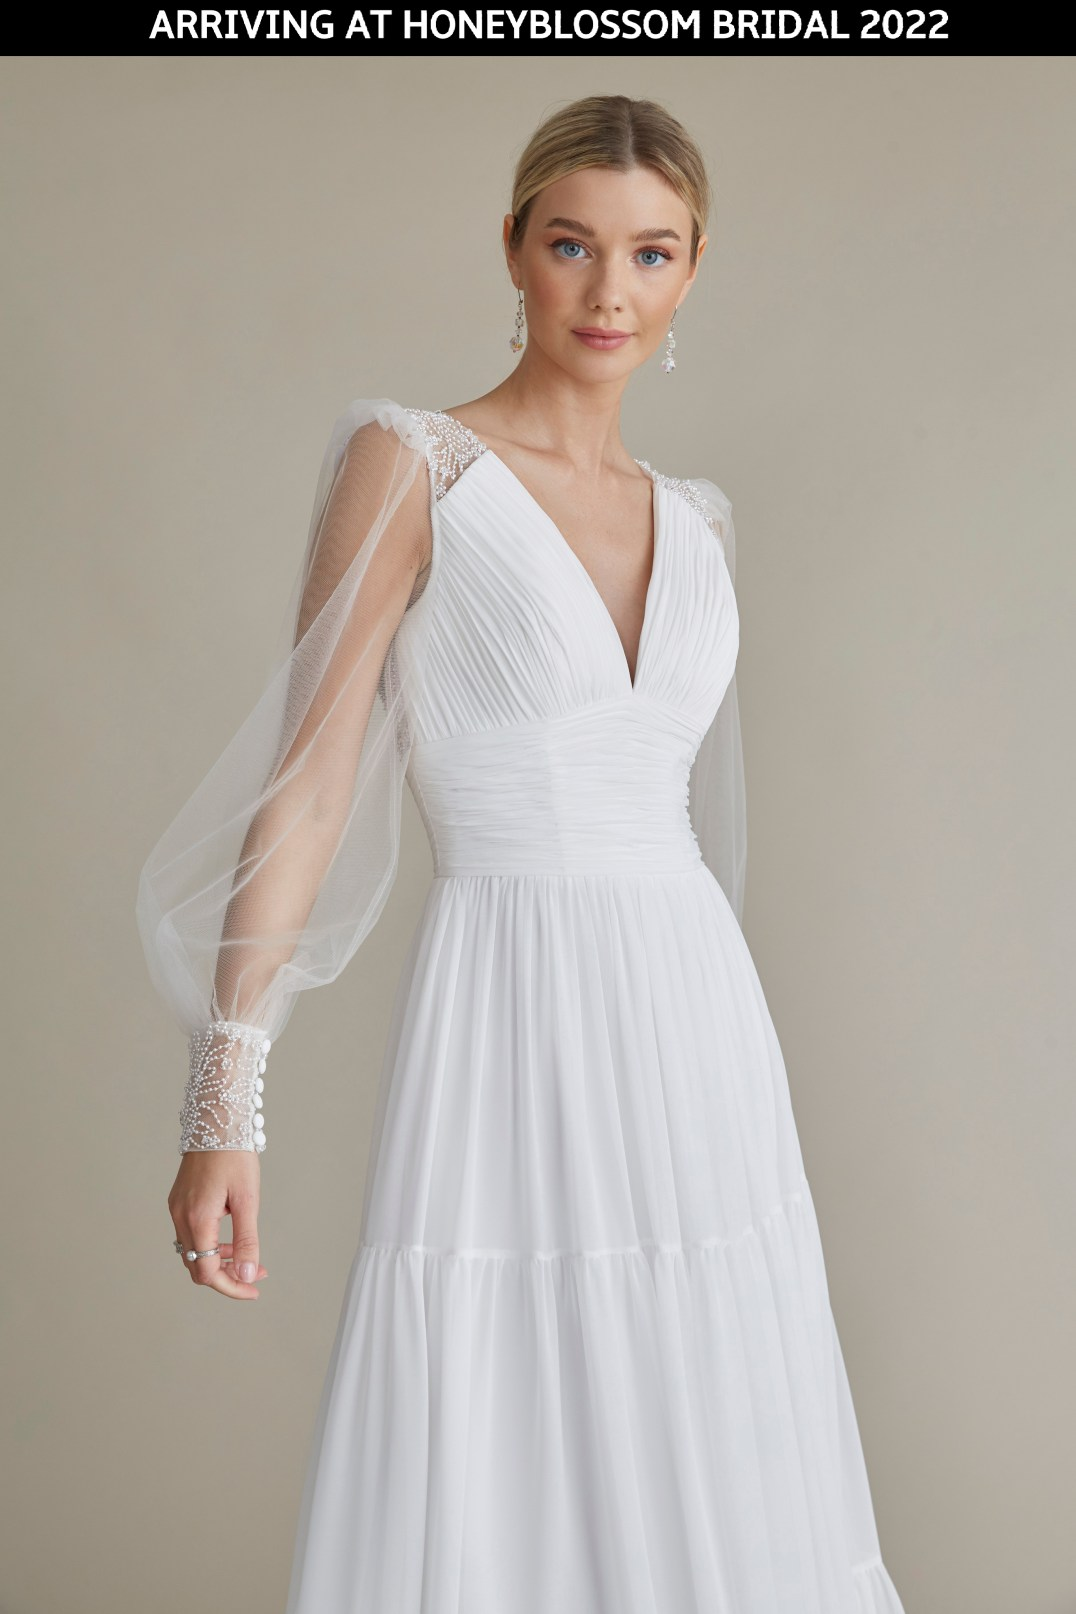 MiaMia Billie wedding gown arriving soon to Honeyblossom Bridal